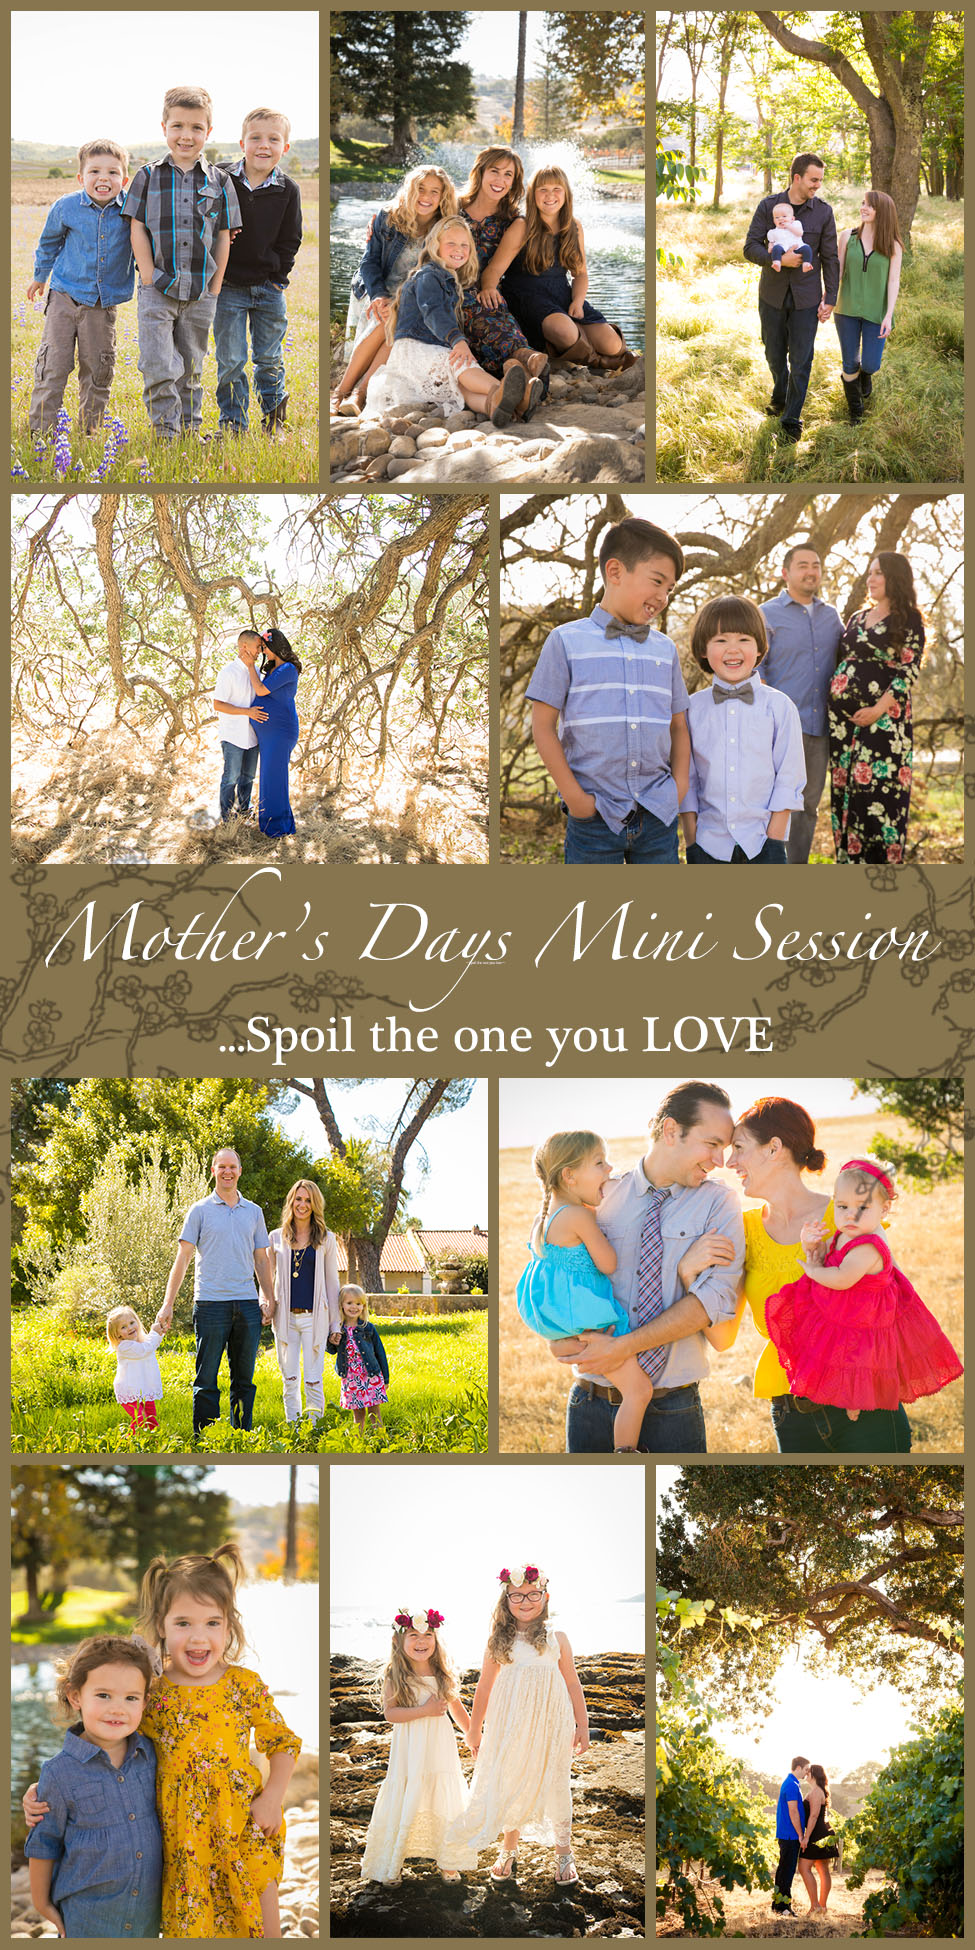 2019 Mother's Day Mini Sessions.jpg